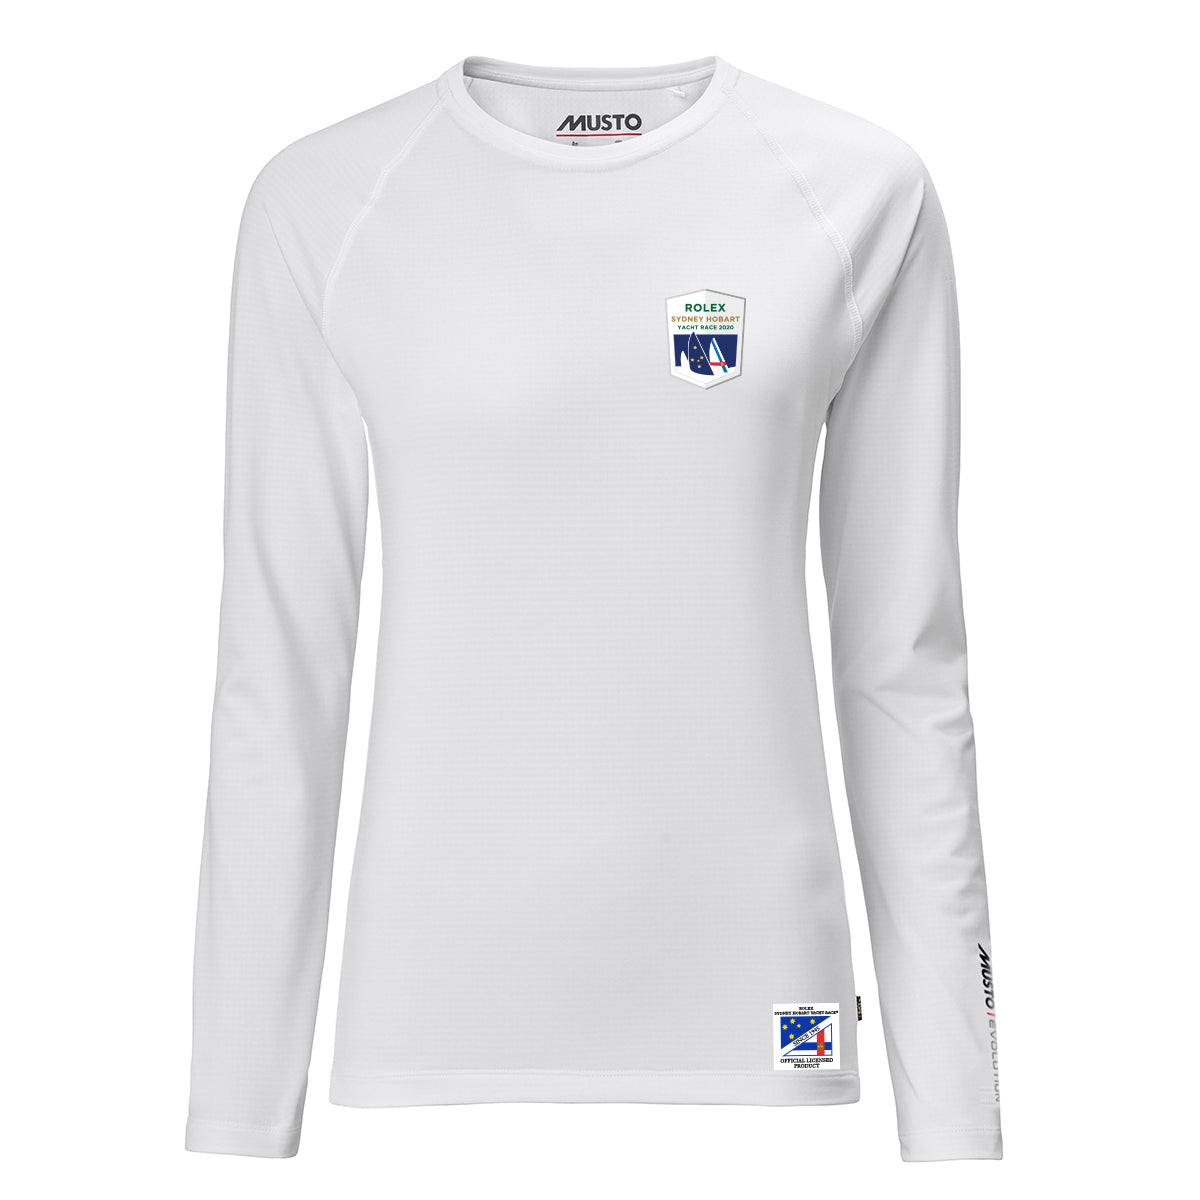 RSHYR20 - Map Long Sleeve T-Shirt (Women's)